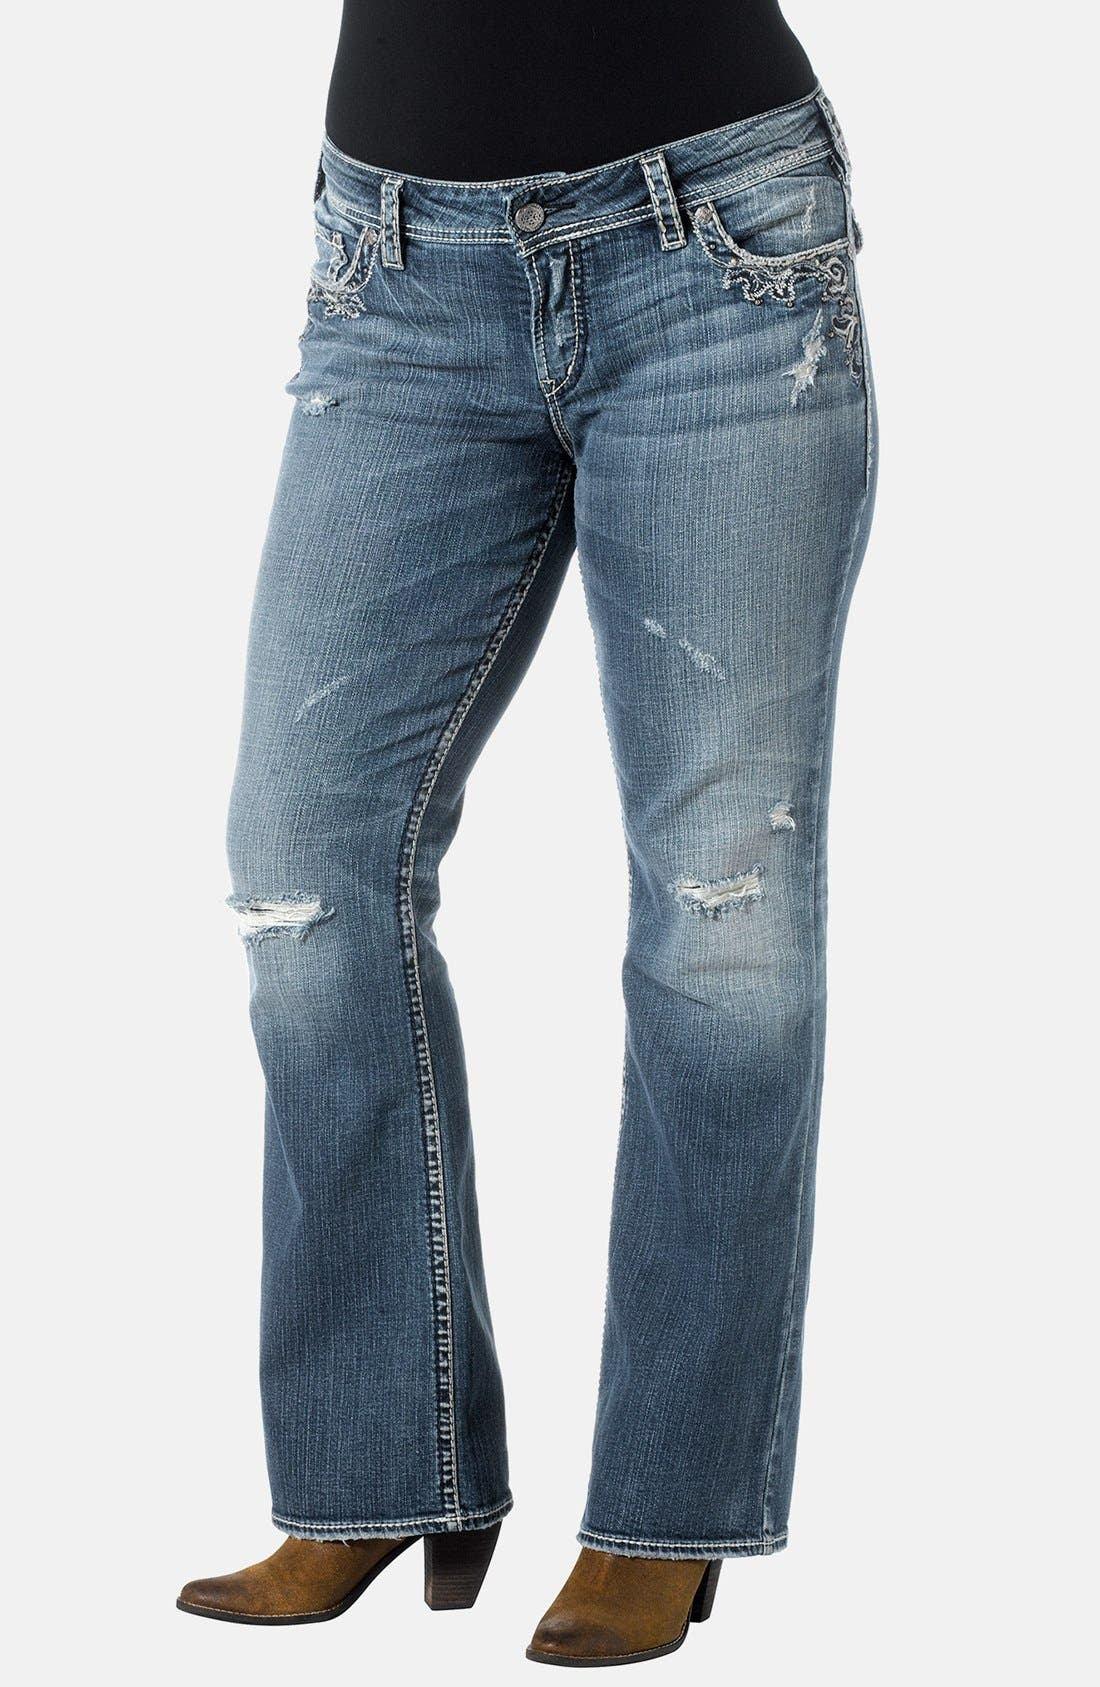 Alternate Image 1 Selected - Silver Jeans Co. 'Suki' Embroidered Pocket Bootcut Jeans (Indigo) (Plus Size)